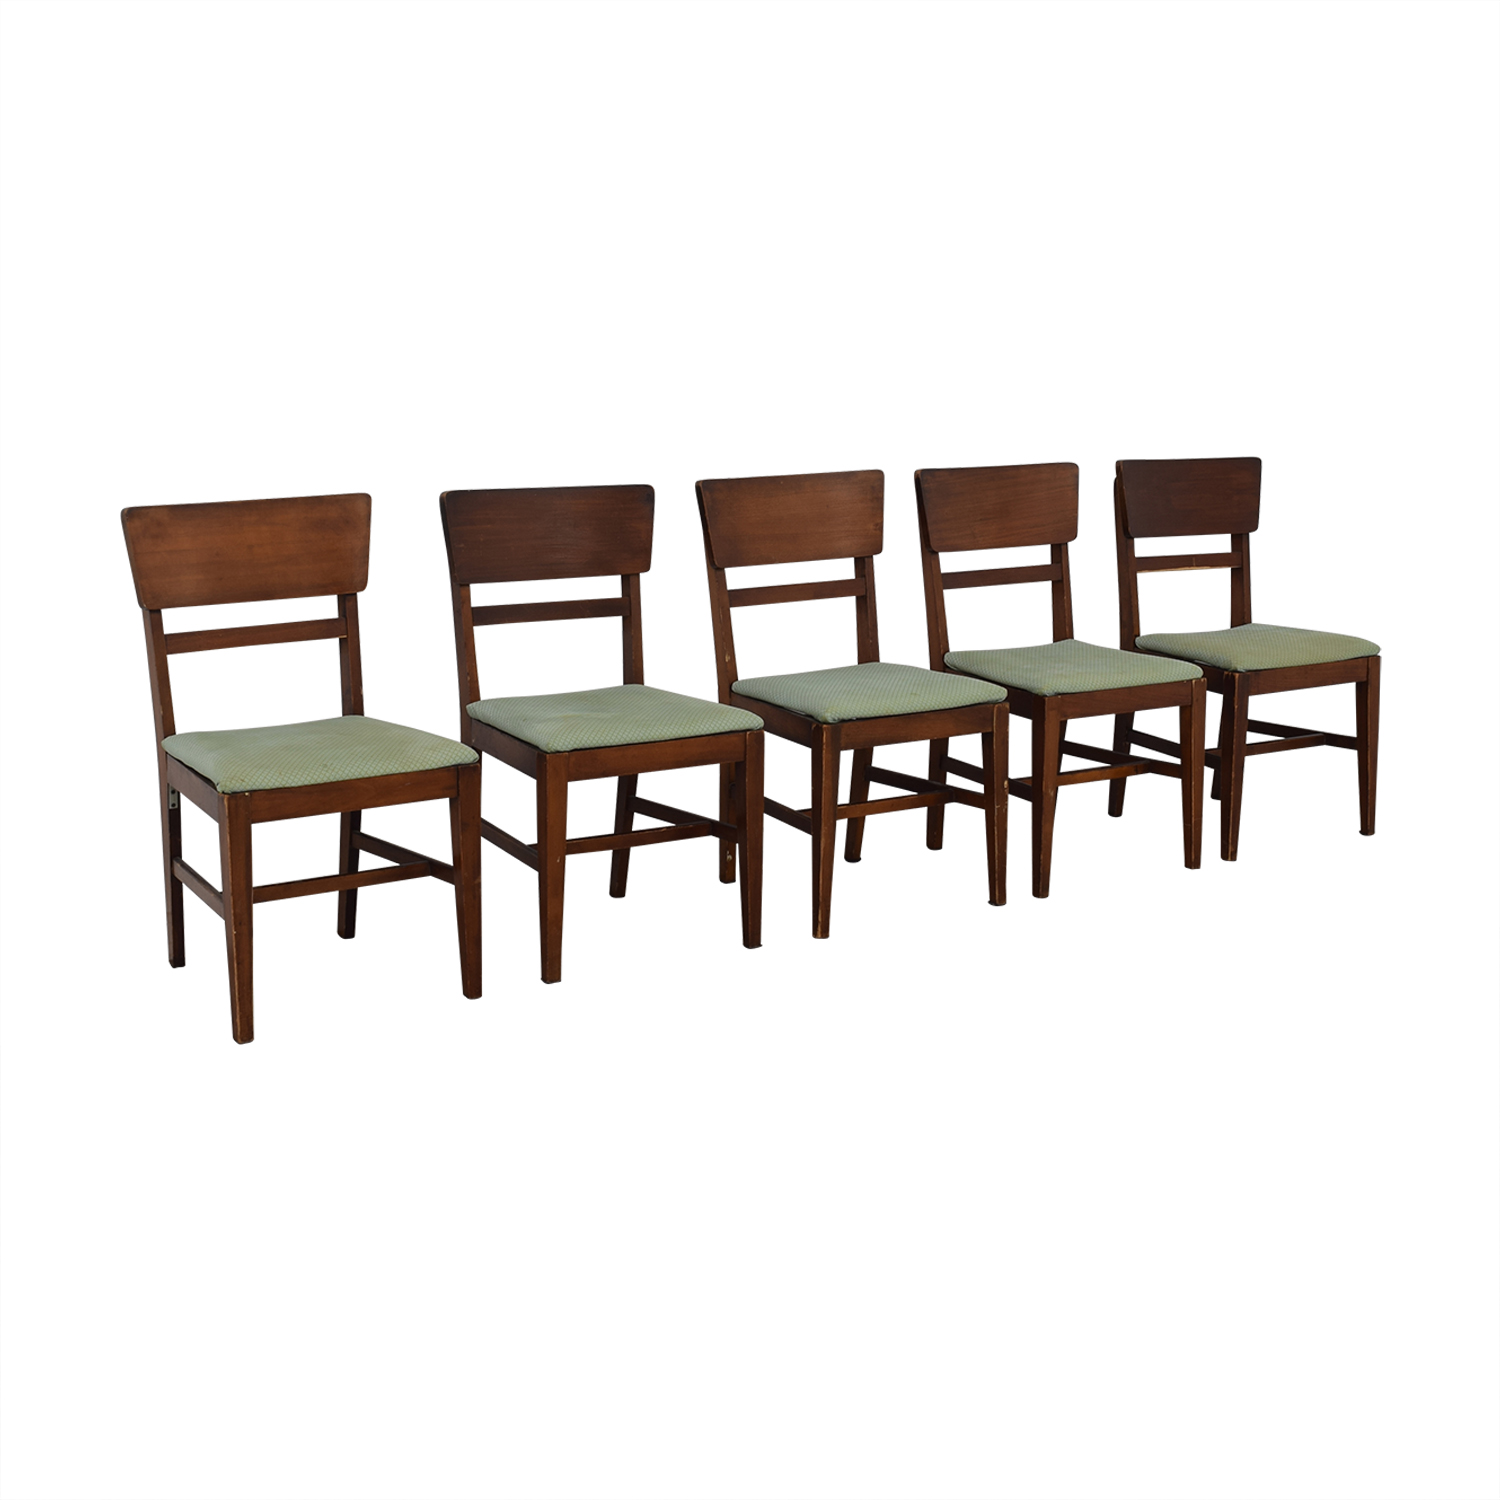 buy  Contemporary Upholstered Dining Chairs online